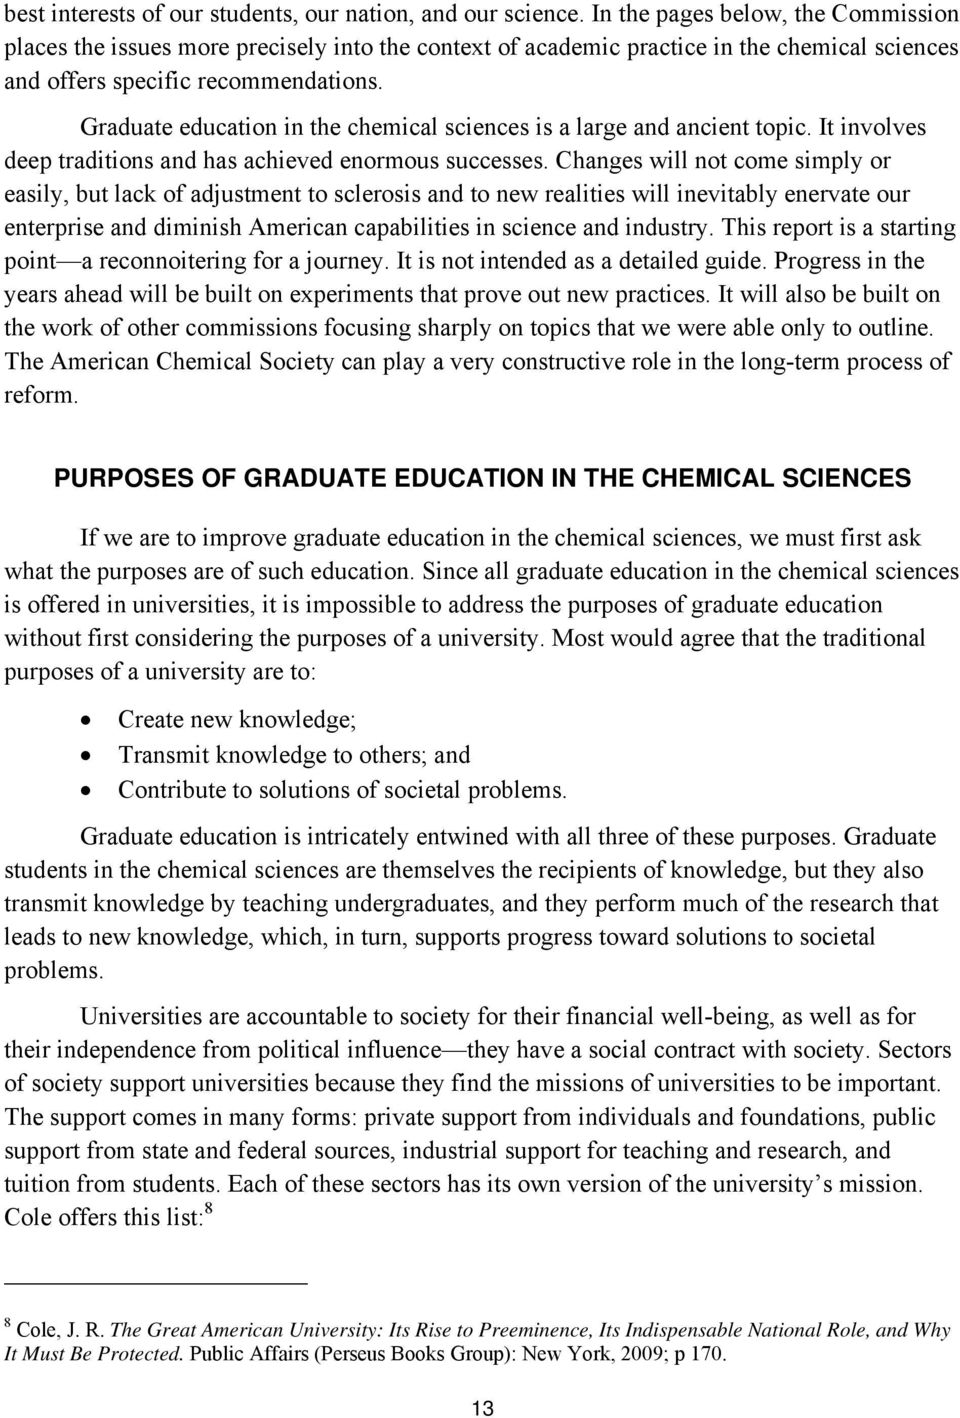 Graduate education in the chemical sciences is a large and ancient topic. It involves deep traditions and has achieved enormous successes.